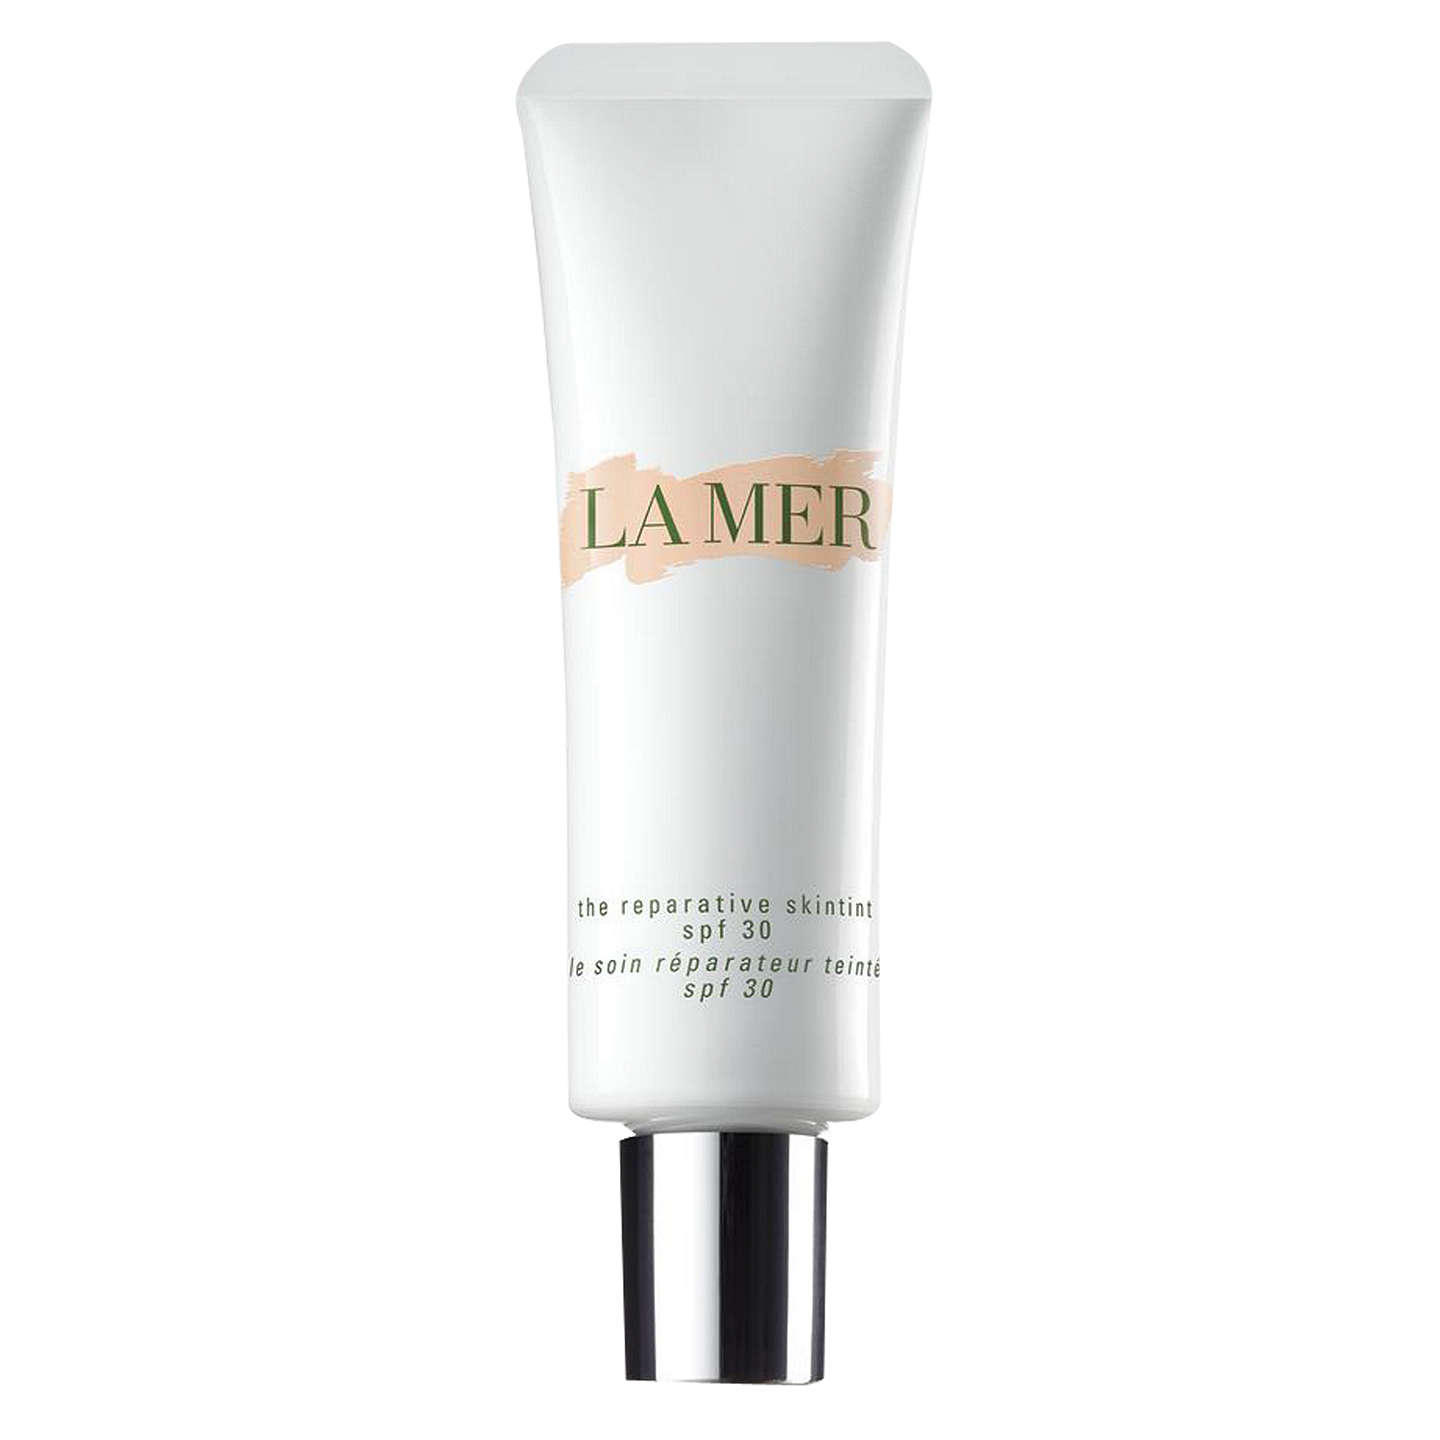 BuyLa Mer The Reparative SkinTint SPF 30, Very Fair 01 Online at johnlewis.com